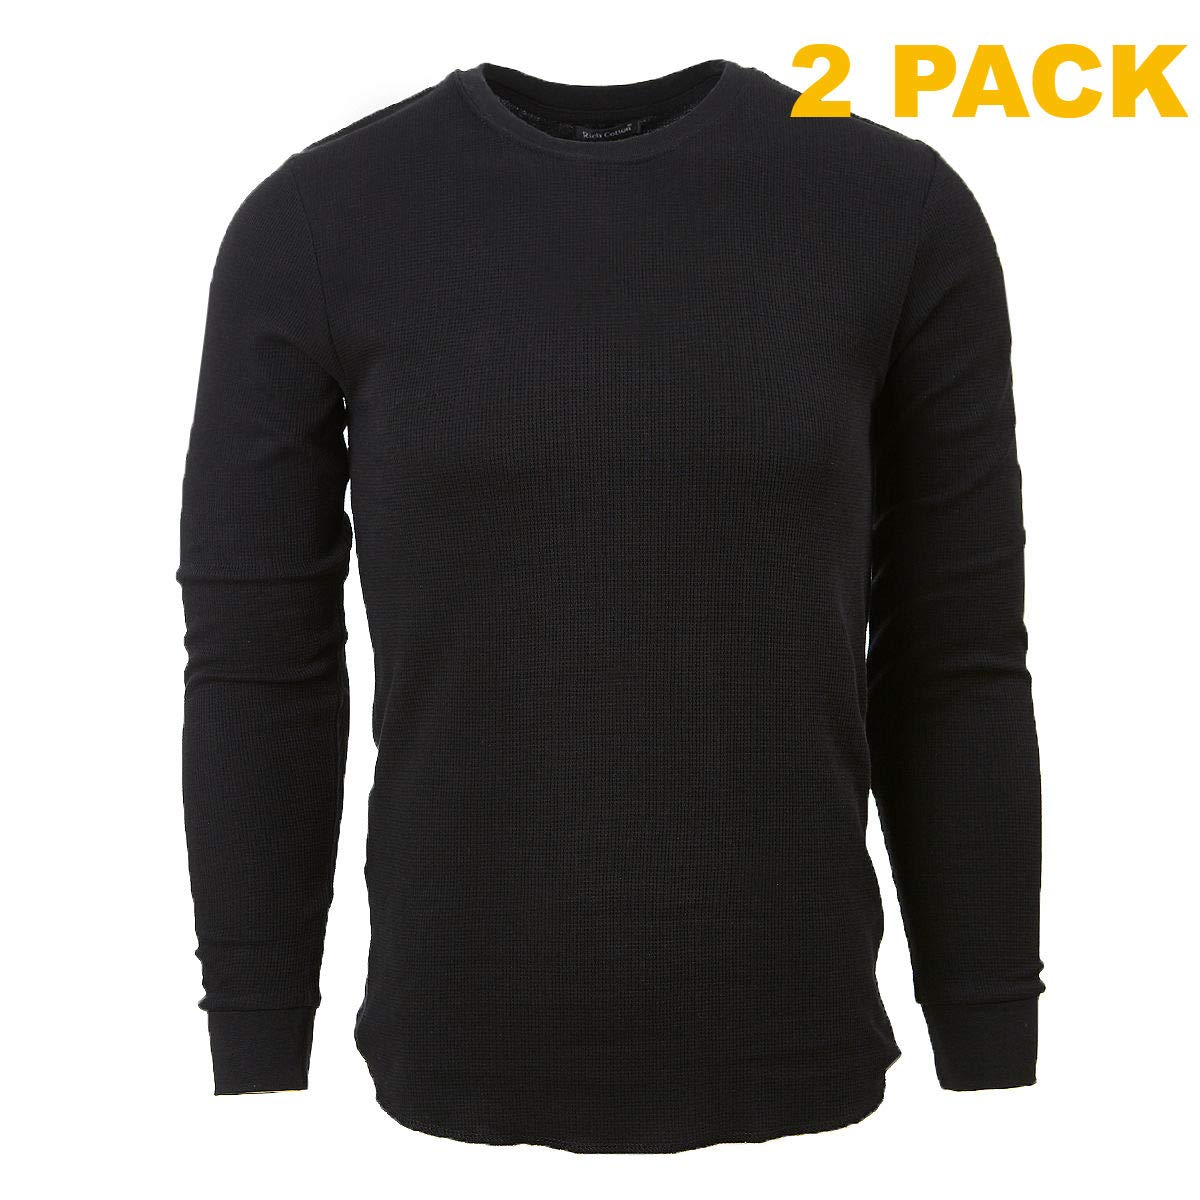 Rich Cotton Thermal Long Sleeve Light Weight T-Shirt Slim Fit Layer Shirt 2, 3 6 Pack